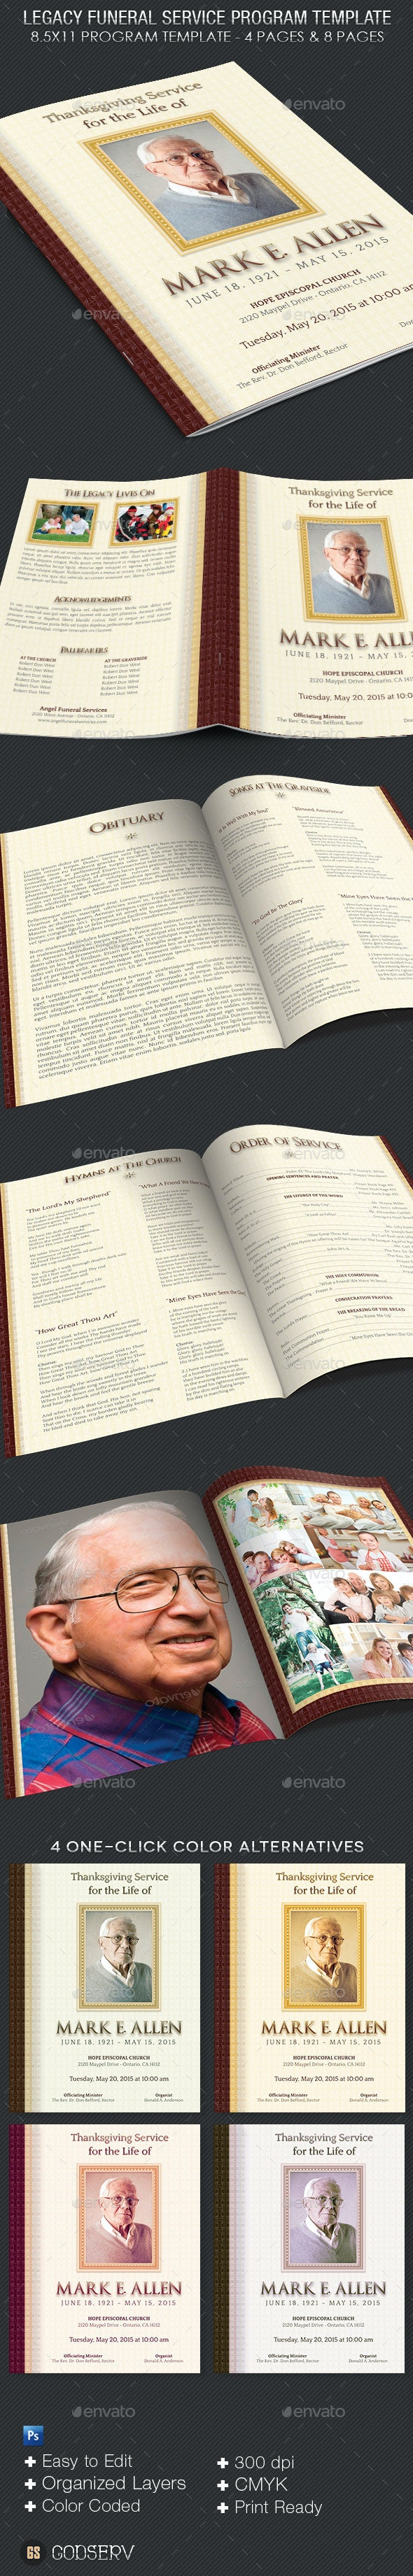 Legacy Funeral Service Program Template - Informational Brochures